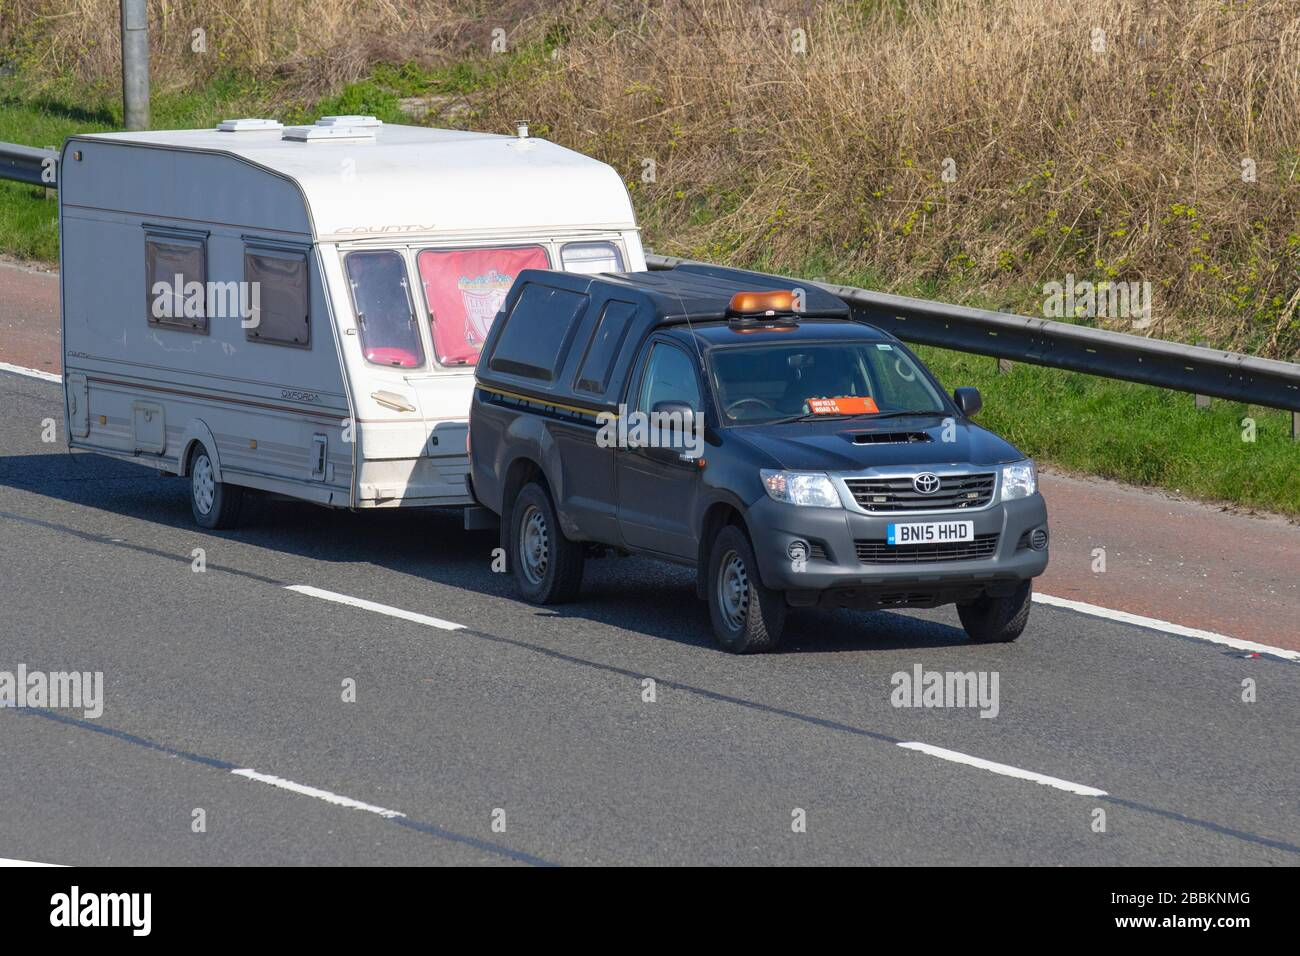 Toyota Camper Van High Resolution Stock Photography And Images Alamy